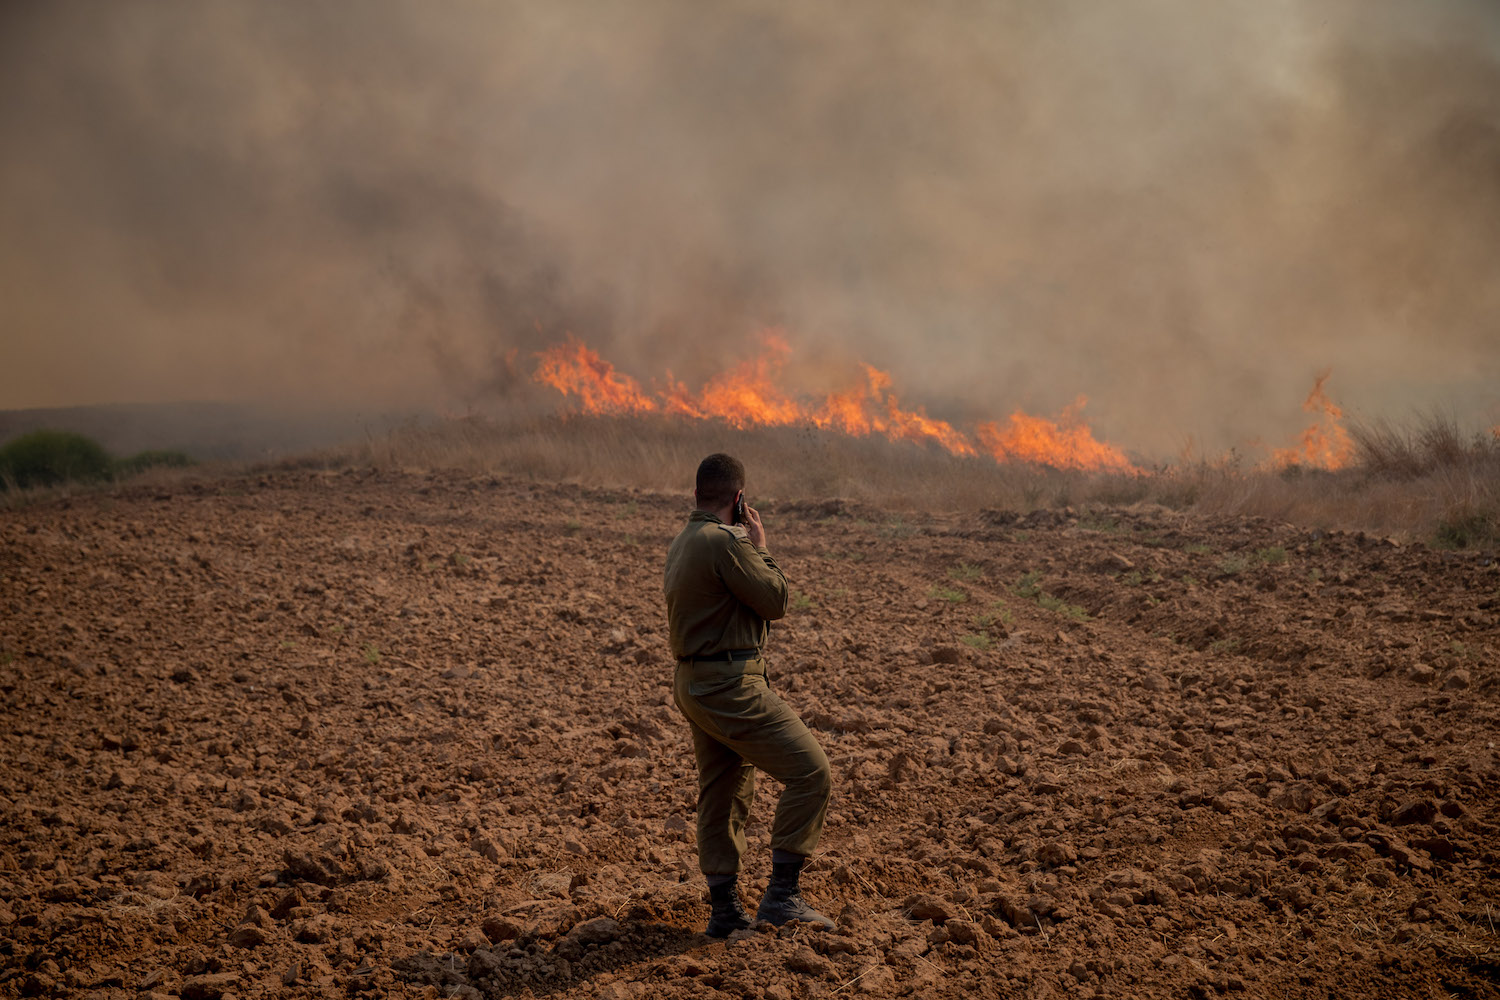 An Israeli soldier gazes at a fire near Kibbutz Be'eri, caused from incendiary kites launched by Palestinians from the Gaza Strip, August 13, 2020. (Yonatan Sindel/Flash90)